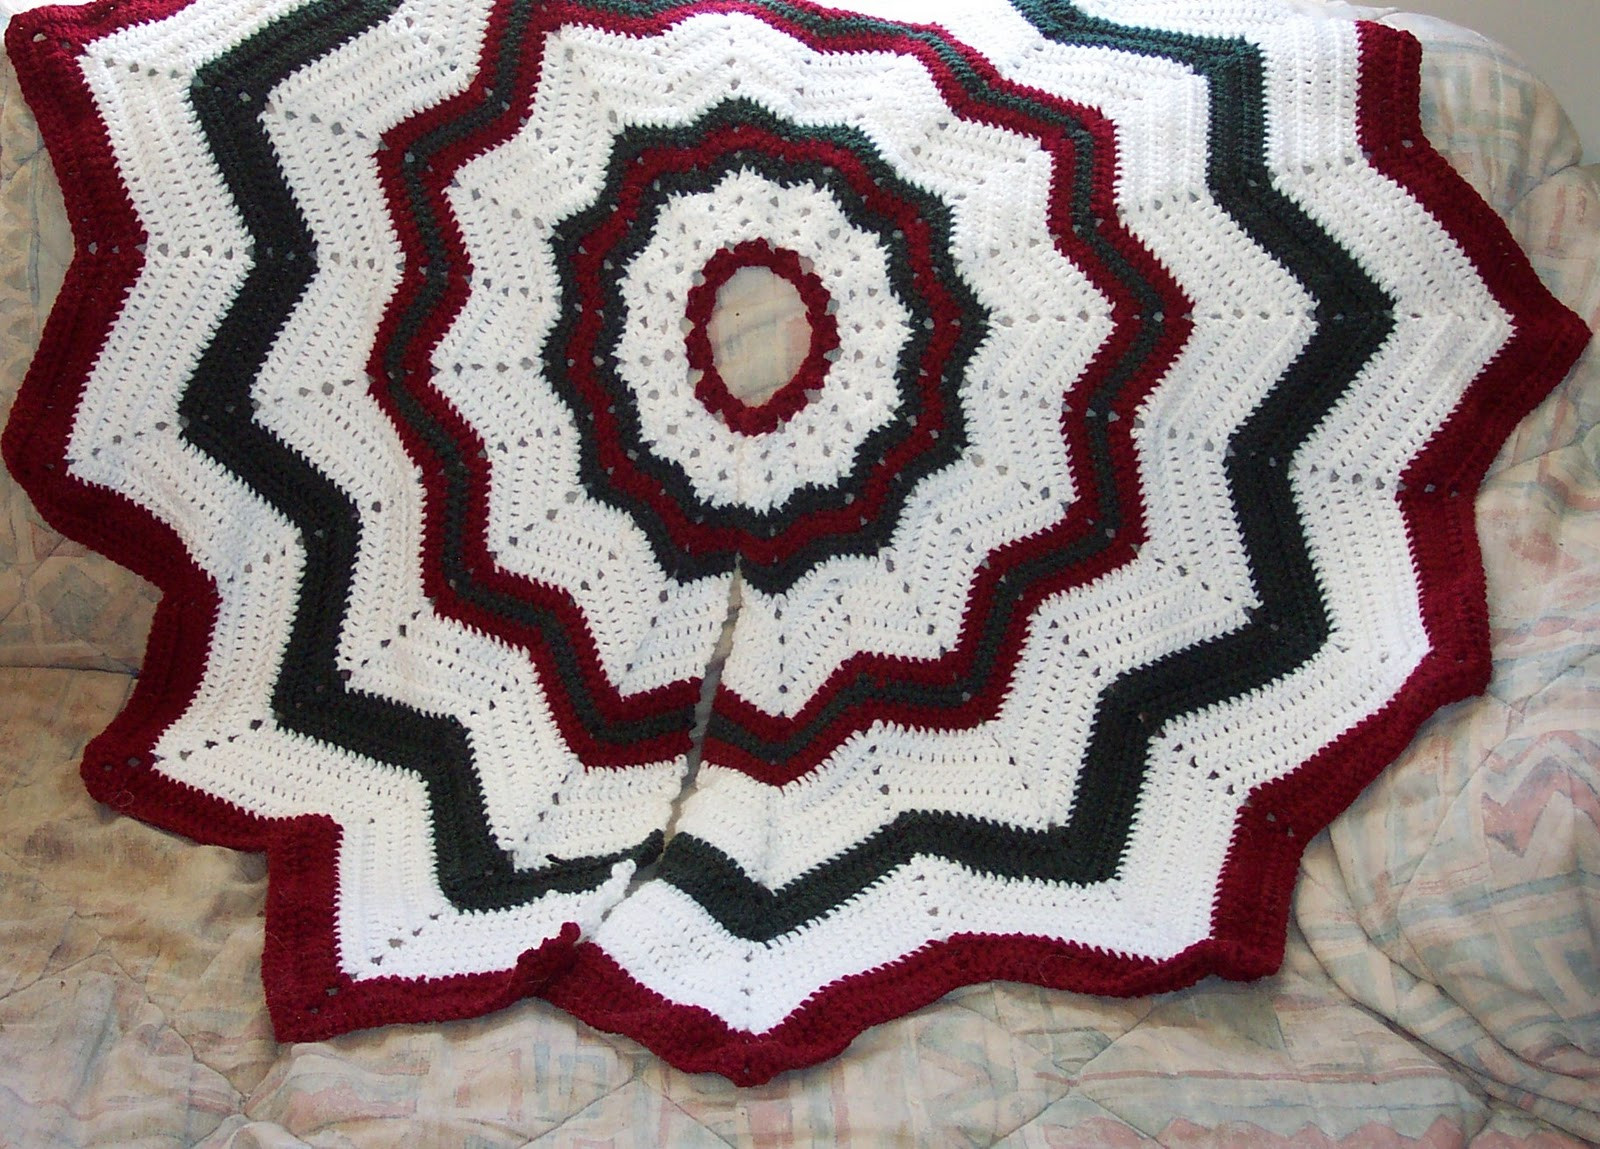 Christmas Tree Skirt Pattern Luxury Smoothfox Crochet and Knit Don T for the Christmas Of Top 49 Images Christmas Tree Skirt Pattern